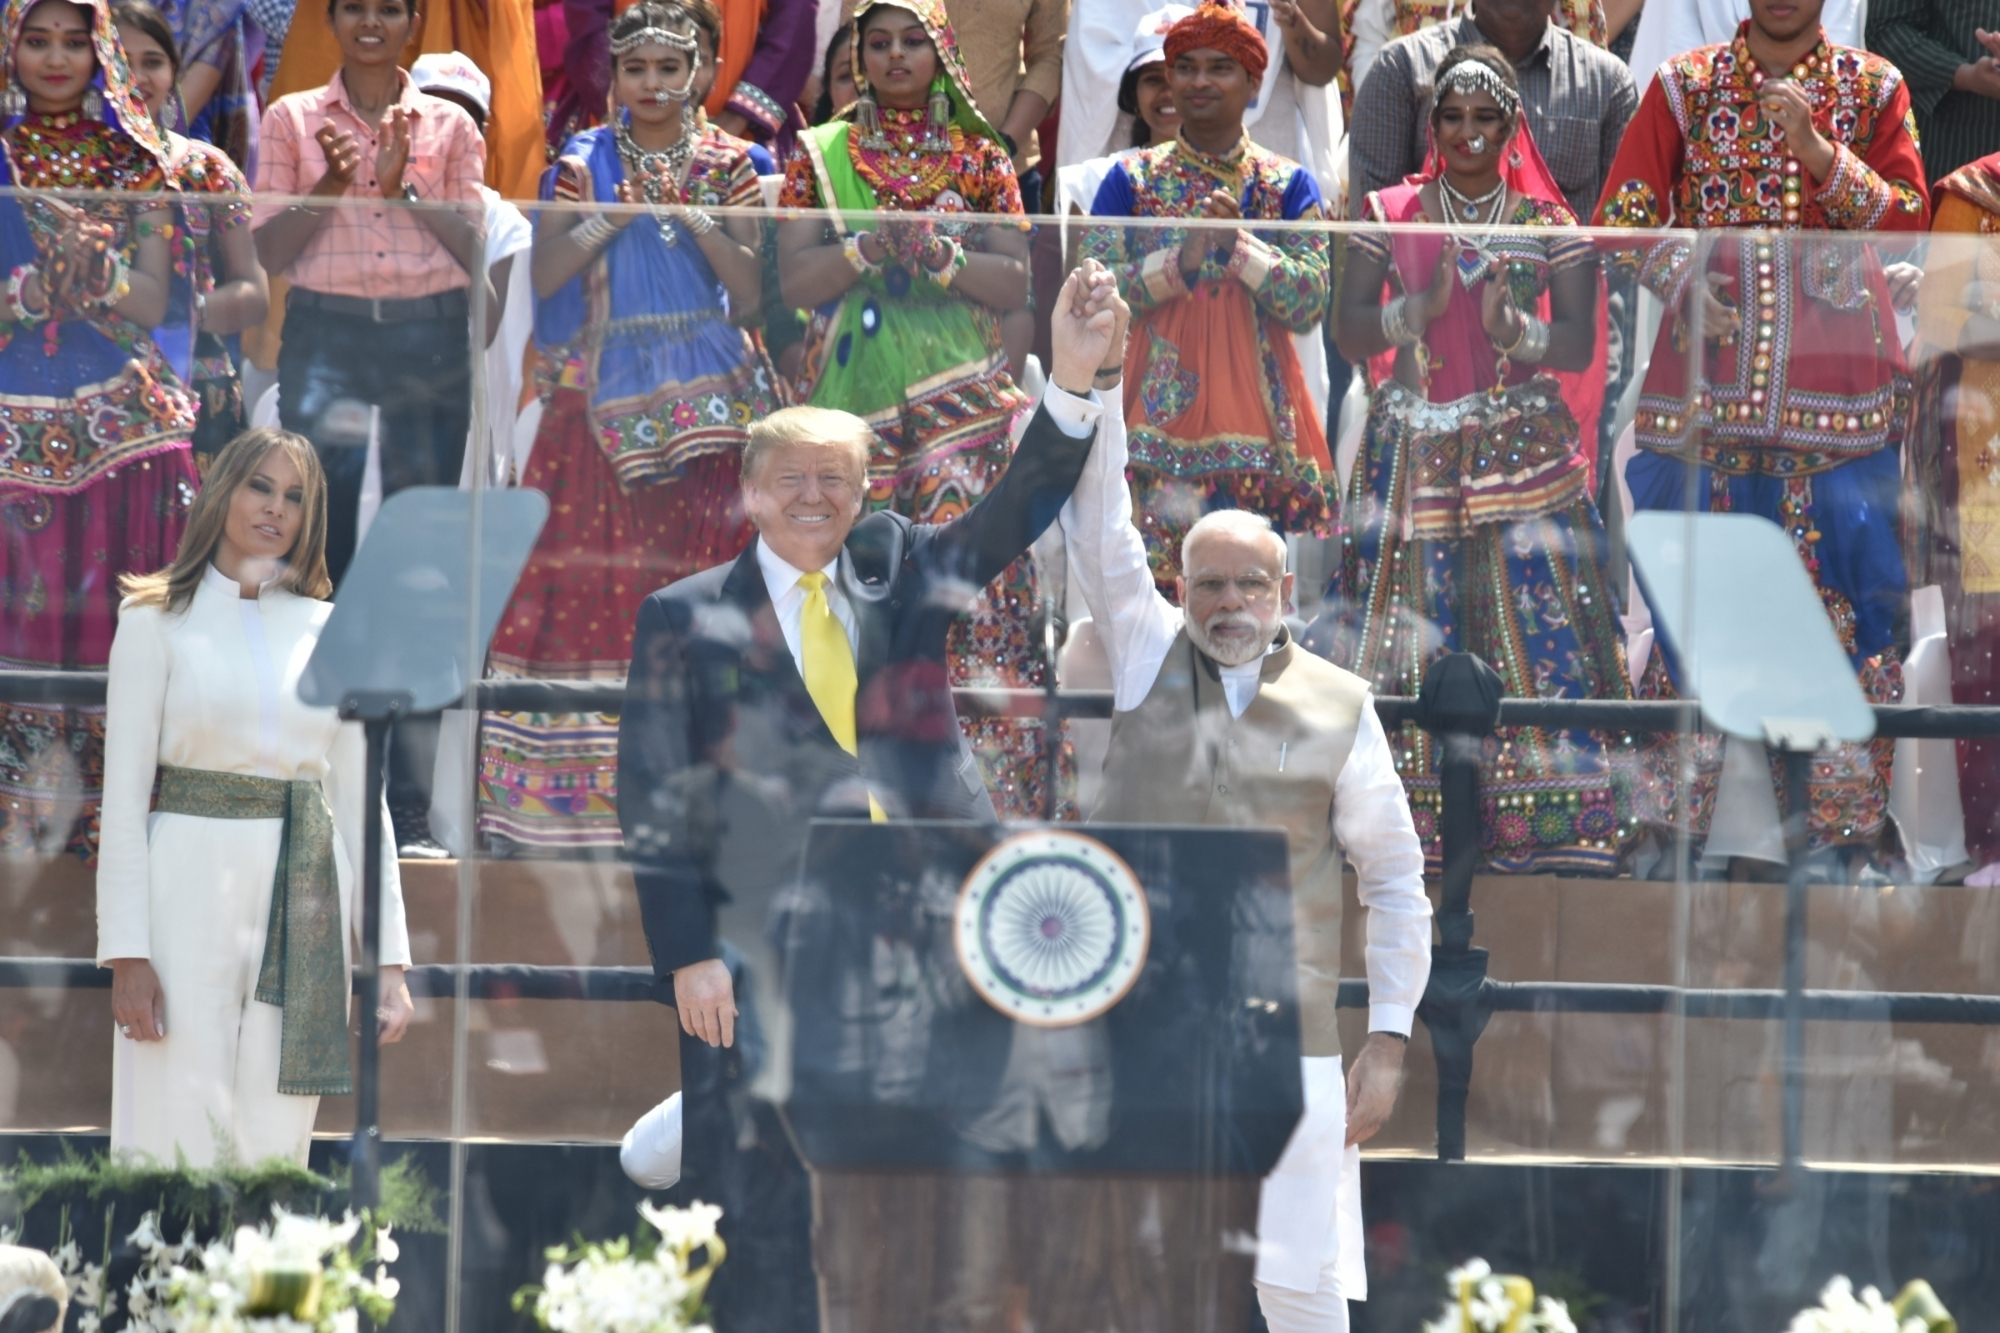 Ahmedabad: Prime Minister Narendra Modi and US President Donald Trump during 'Namste Trump' mega event at Motera cricket stadium in Ahmedabad on Feb 24, 2020. (Photo: IANS/PIB)